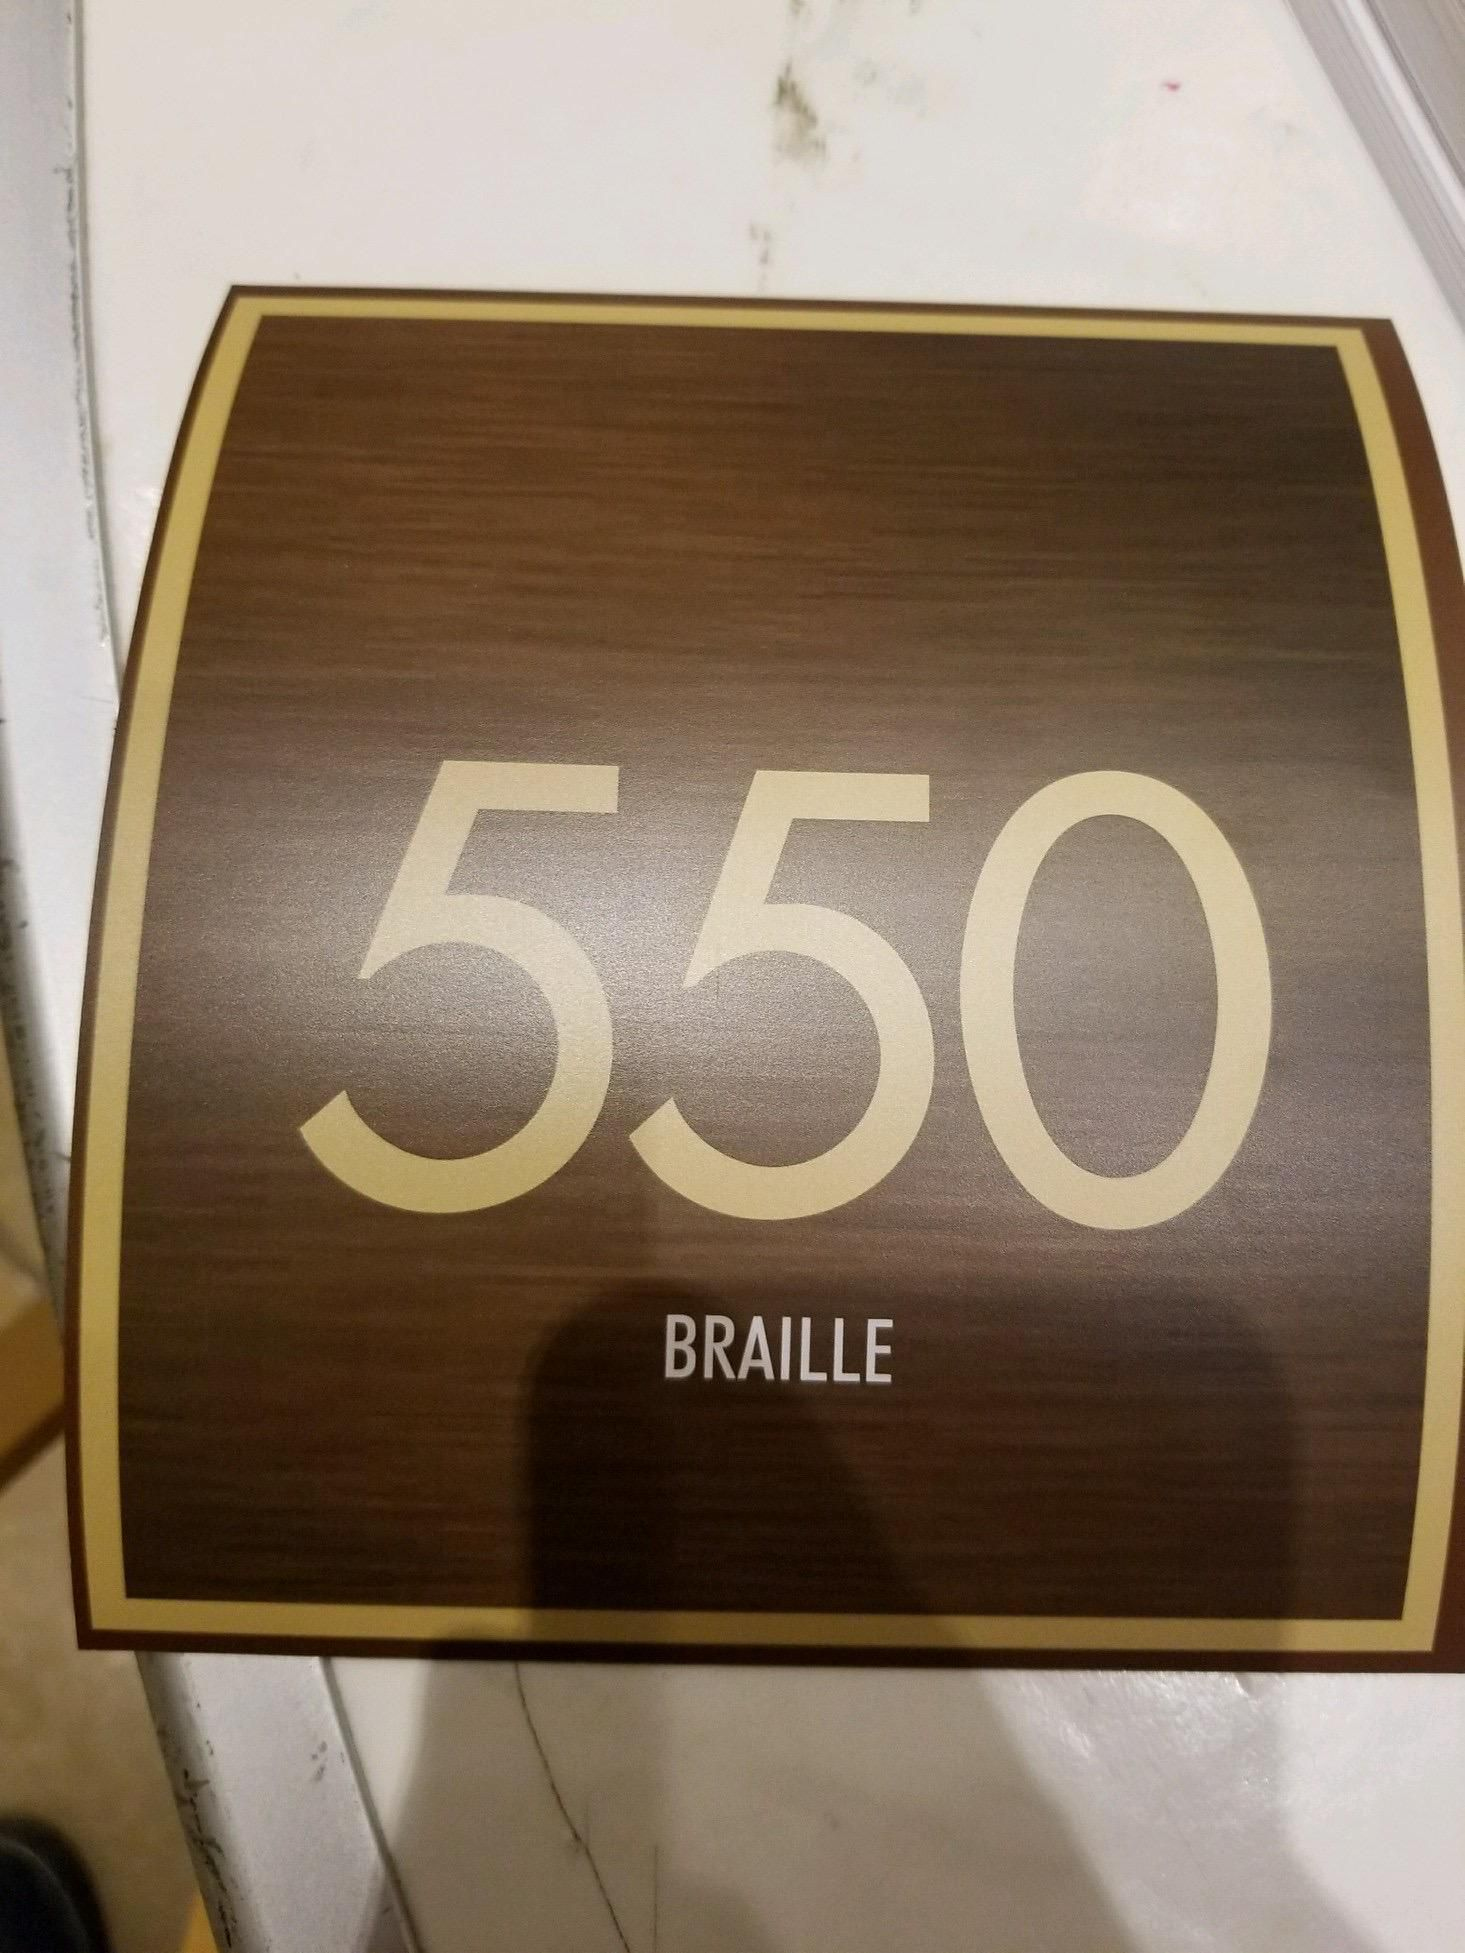 My friend works for a contracting company that is renovating a hotel. They asked for room numbers, with braille on the bottom for blind people to read. This is what their supplier sent them .